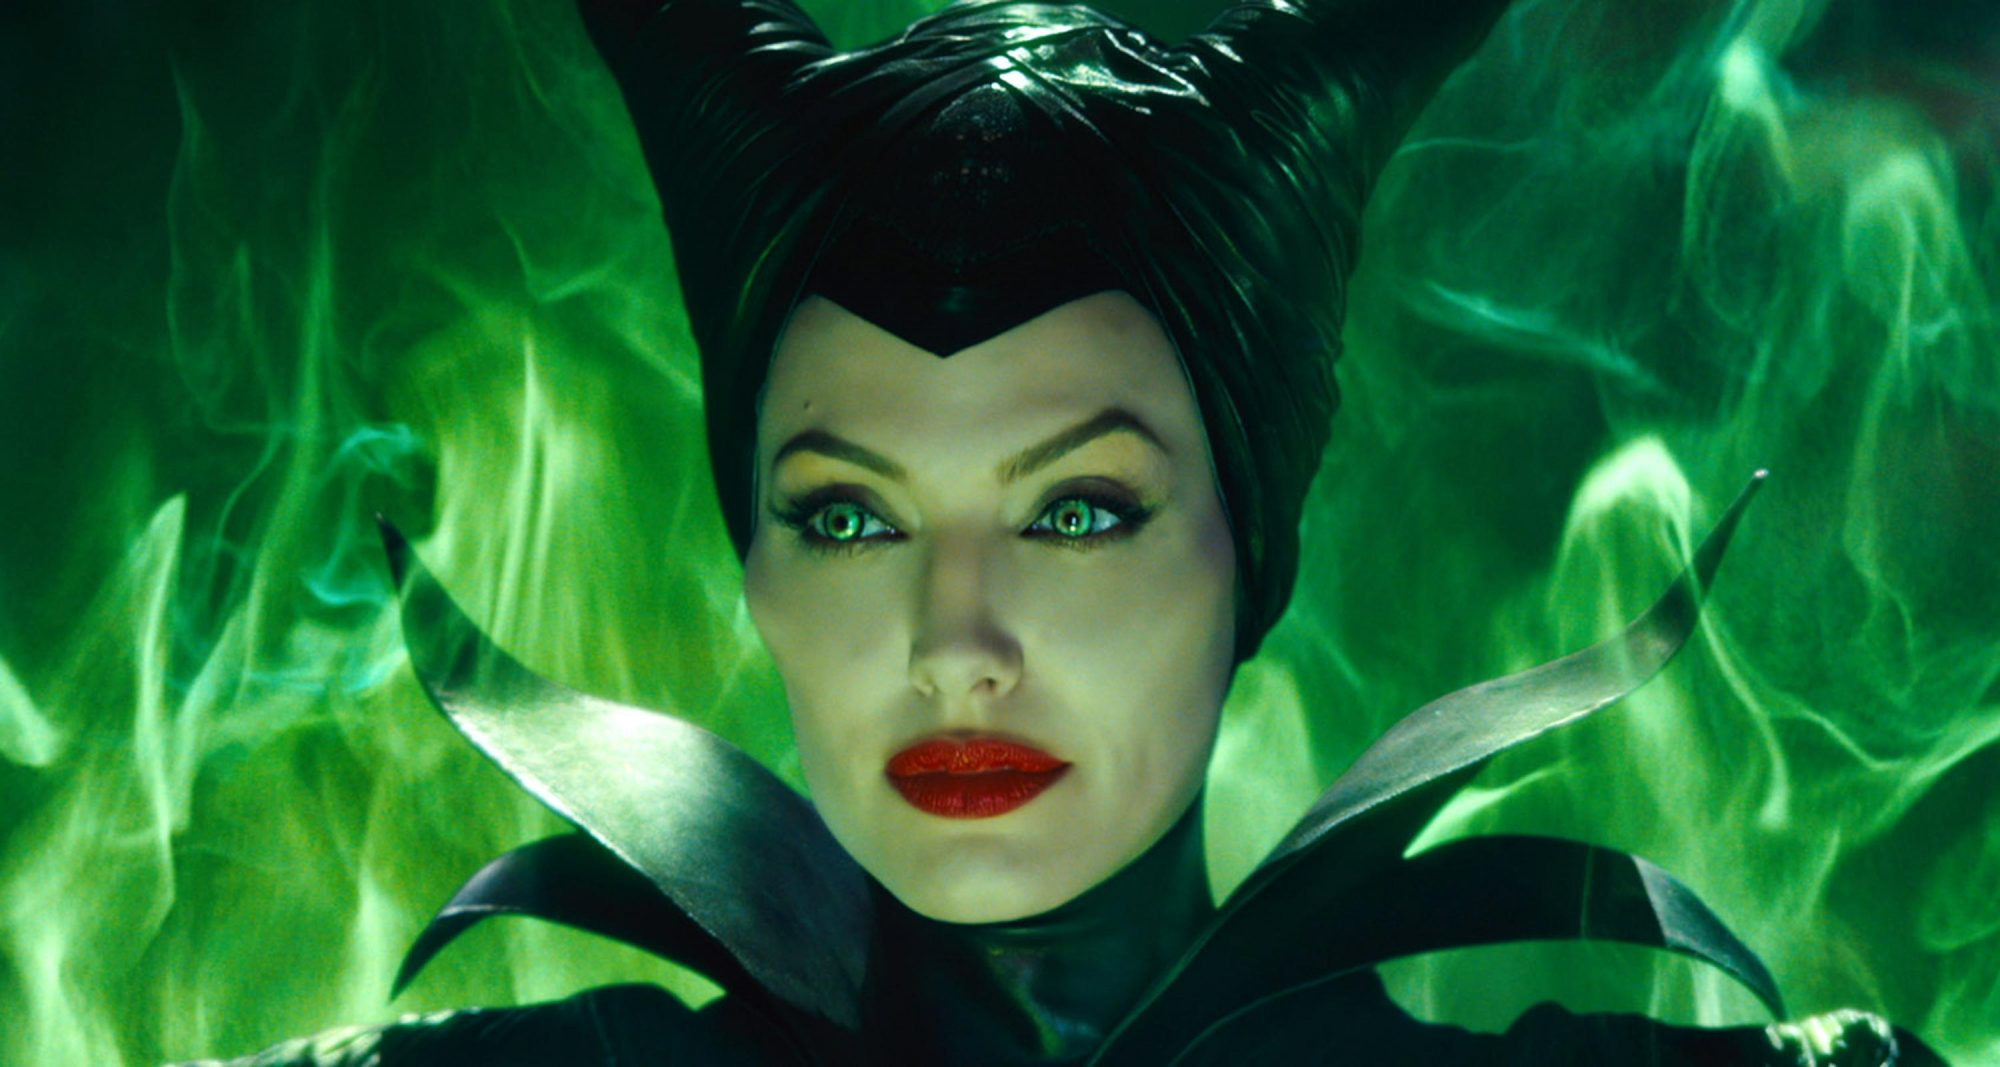 MALEFICENT, Angelina Jolie as Maleficent, 2014. ©Walt Disney Studios Motion Pictures/courtesy